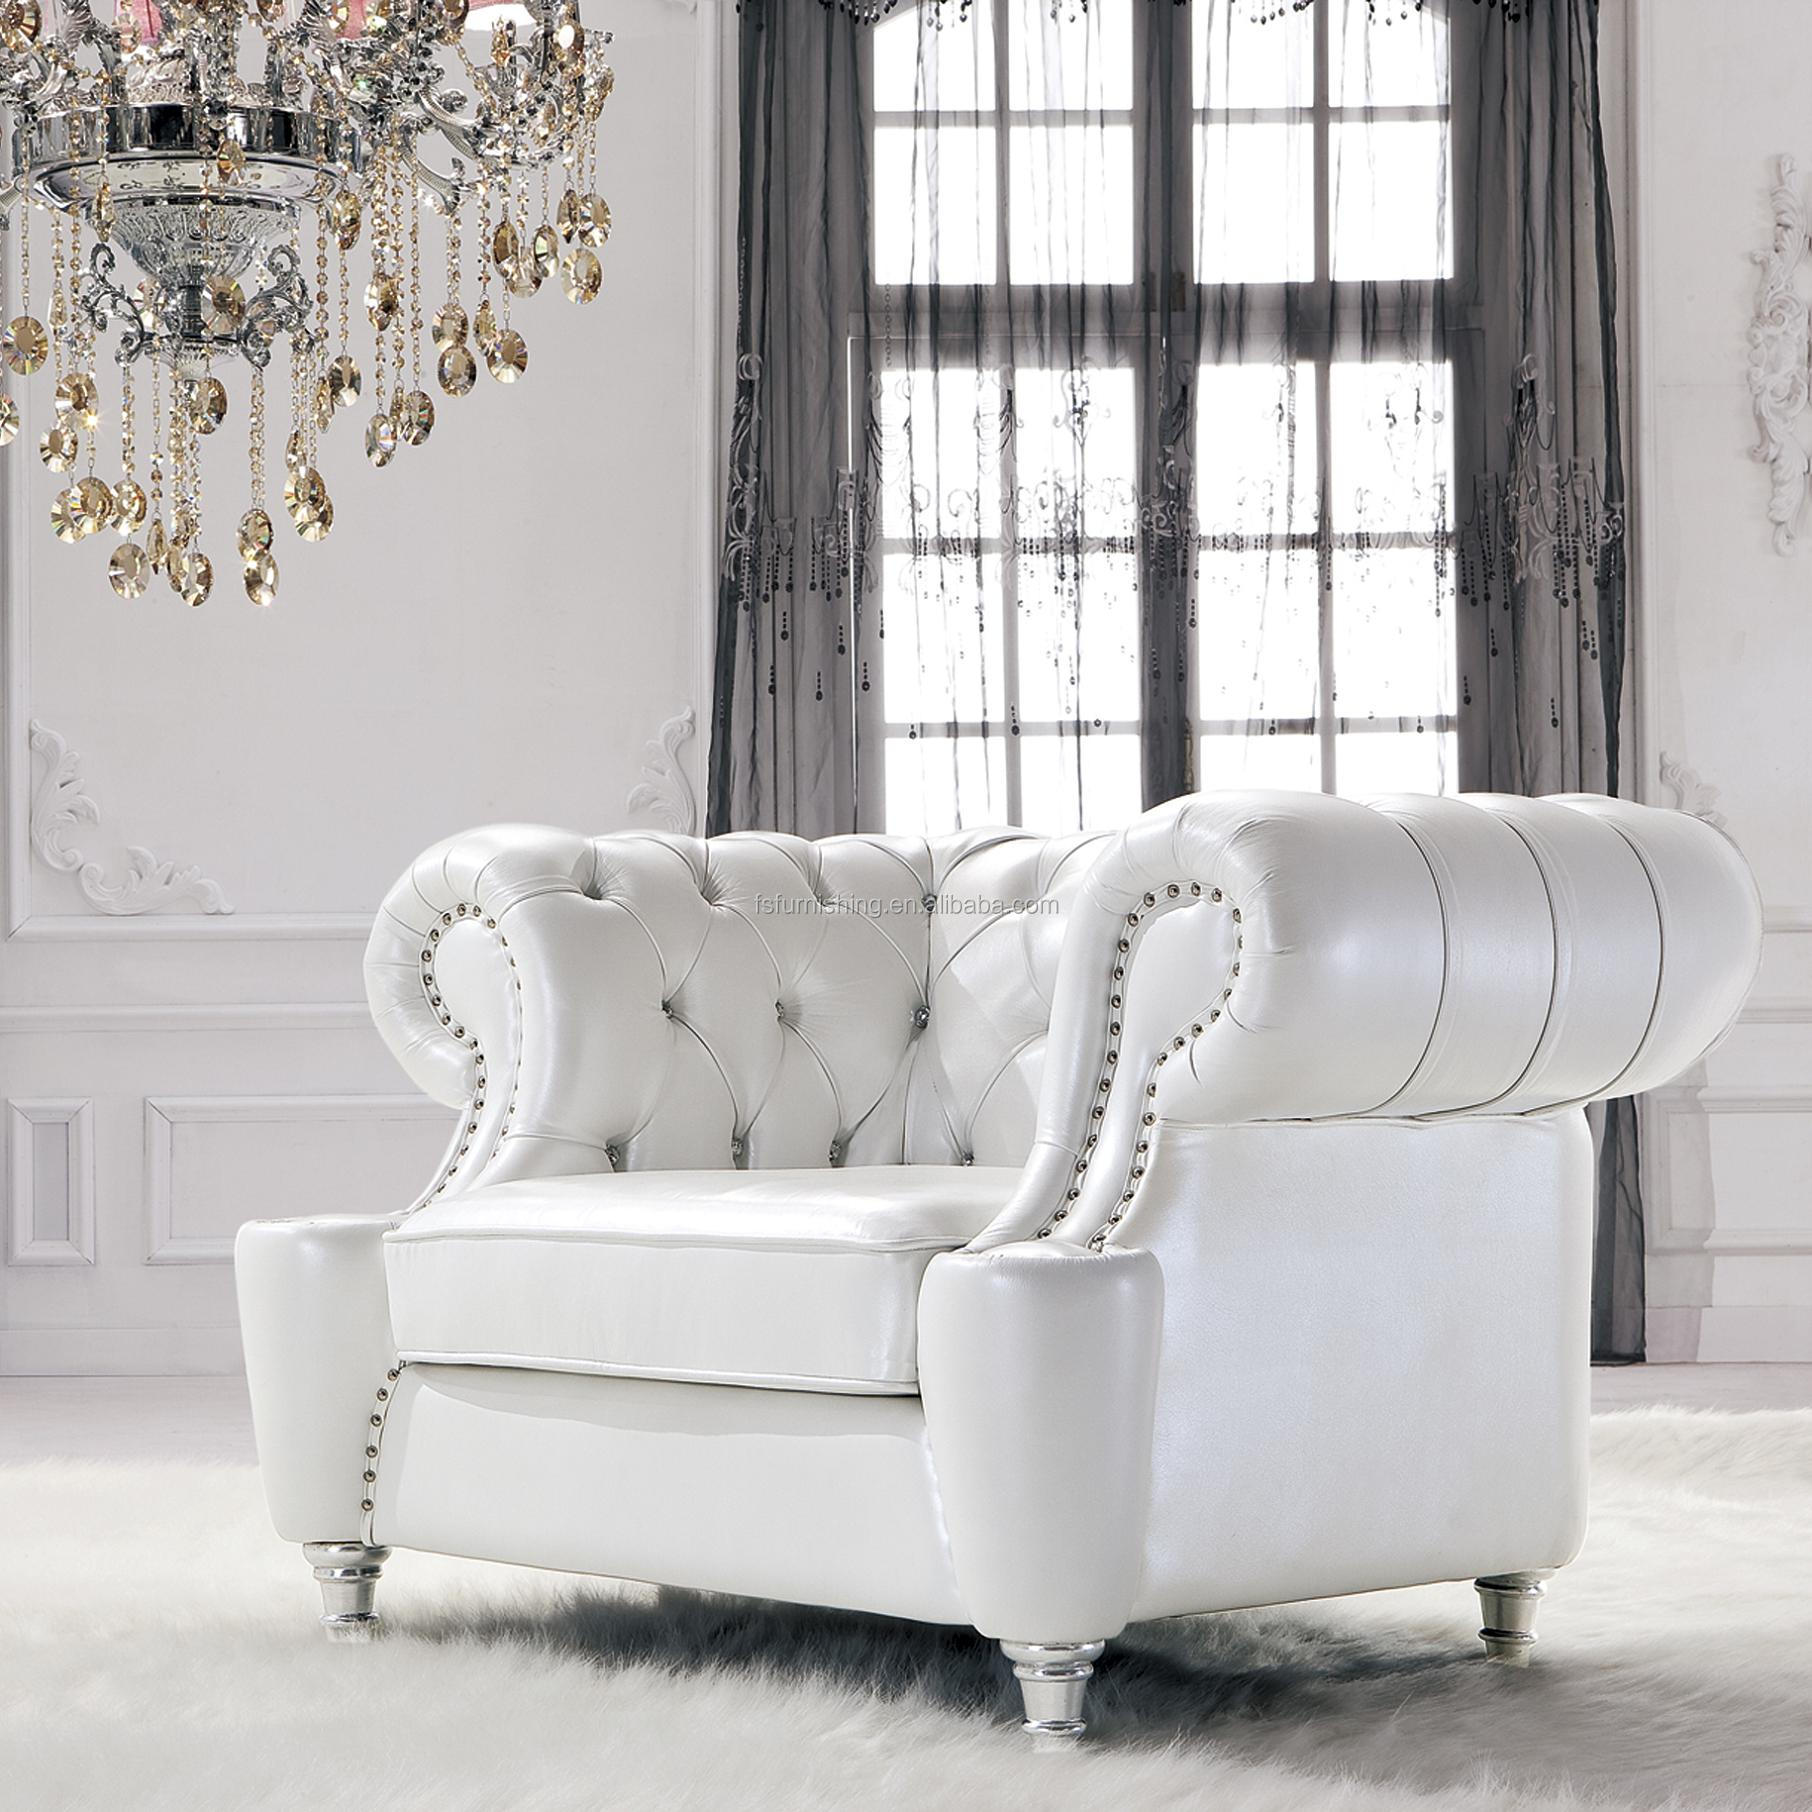 Jr307 Modern Contemporary White Color Genuine Thick Leather Retro Diamond Stitch Living Room Sofa Set 1 2 3 Ottoman Buy Living Room Soft